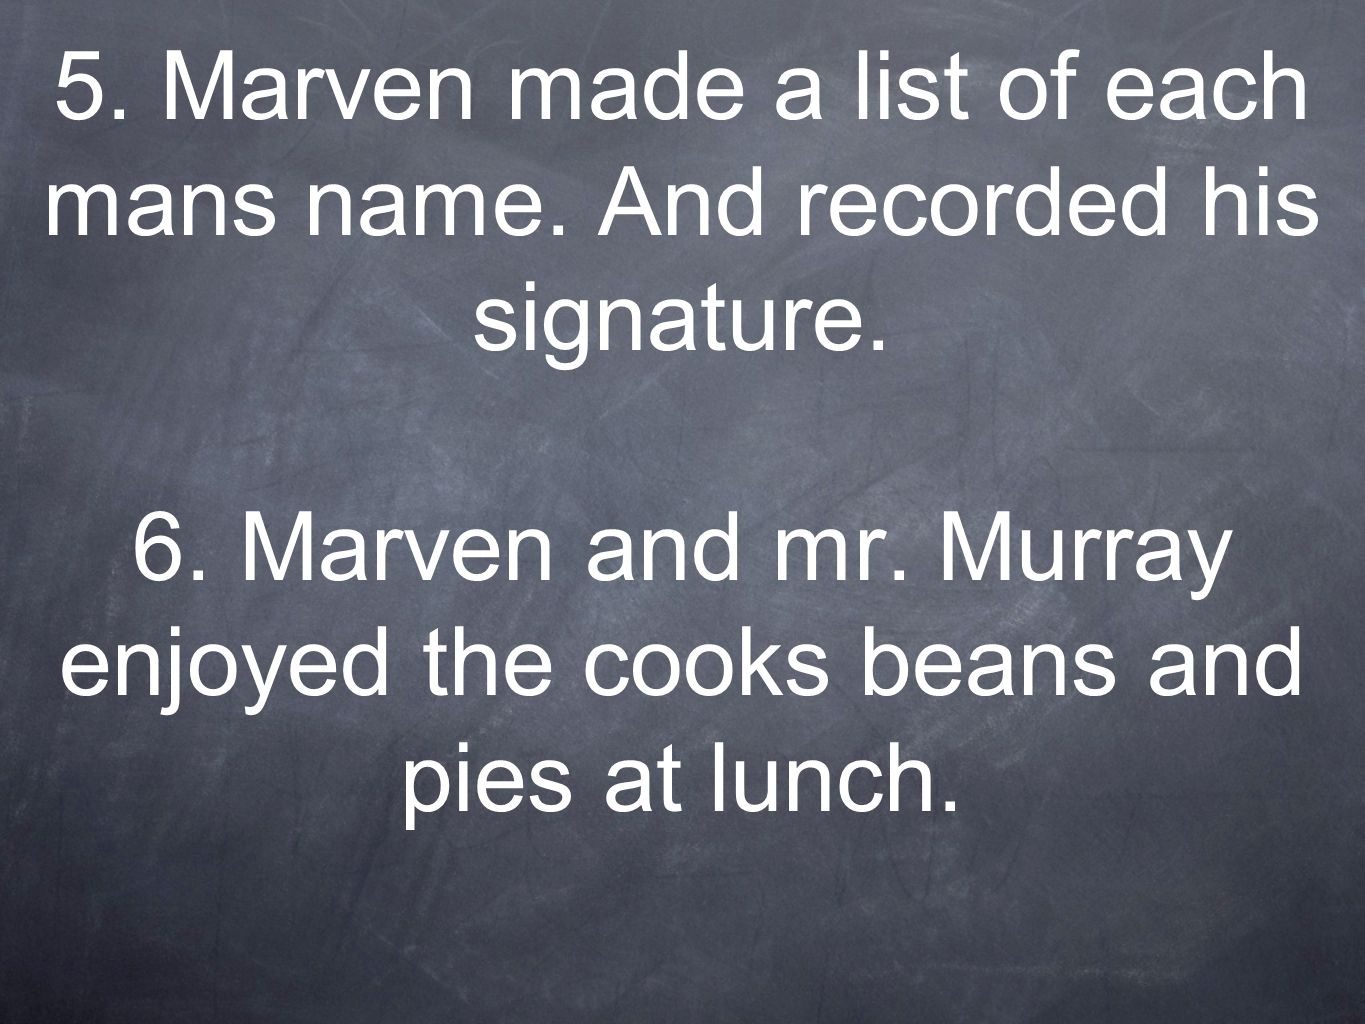 5. Marven made a list of each mans name. And recorded his signature.